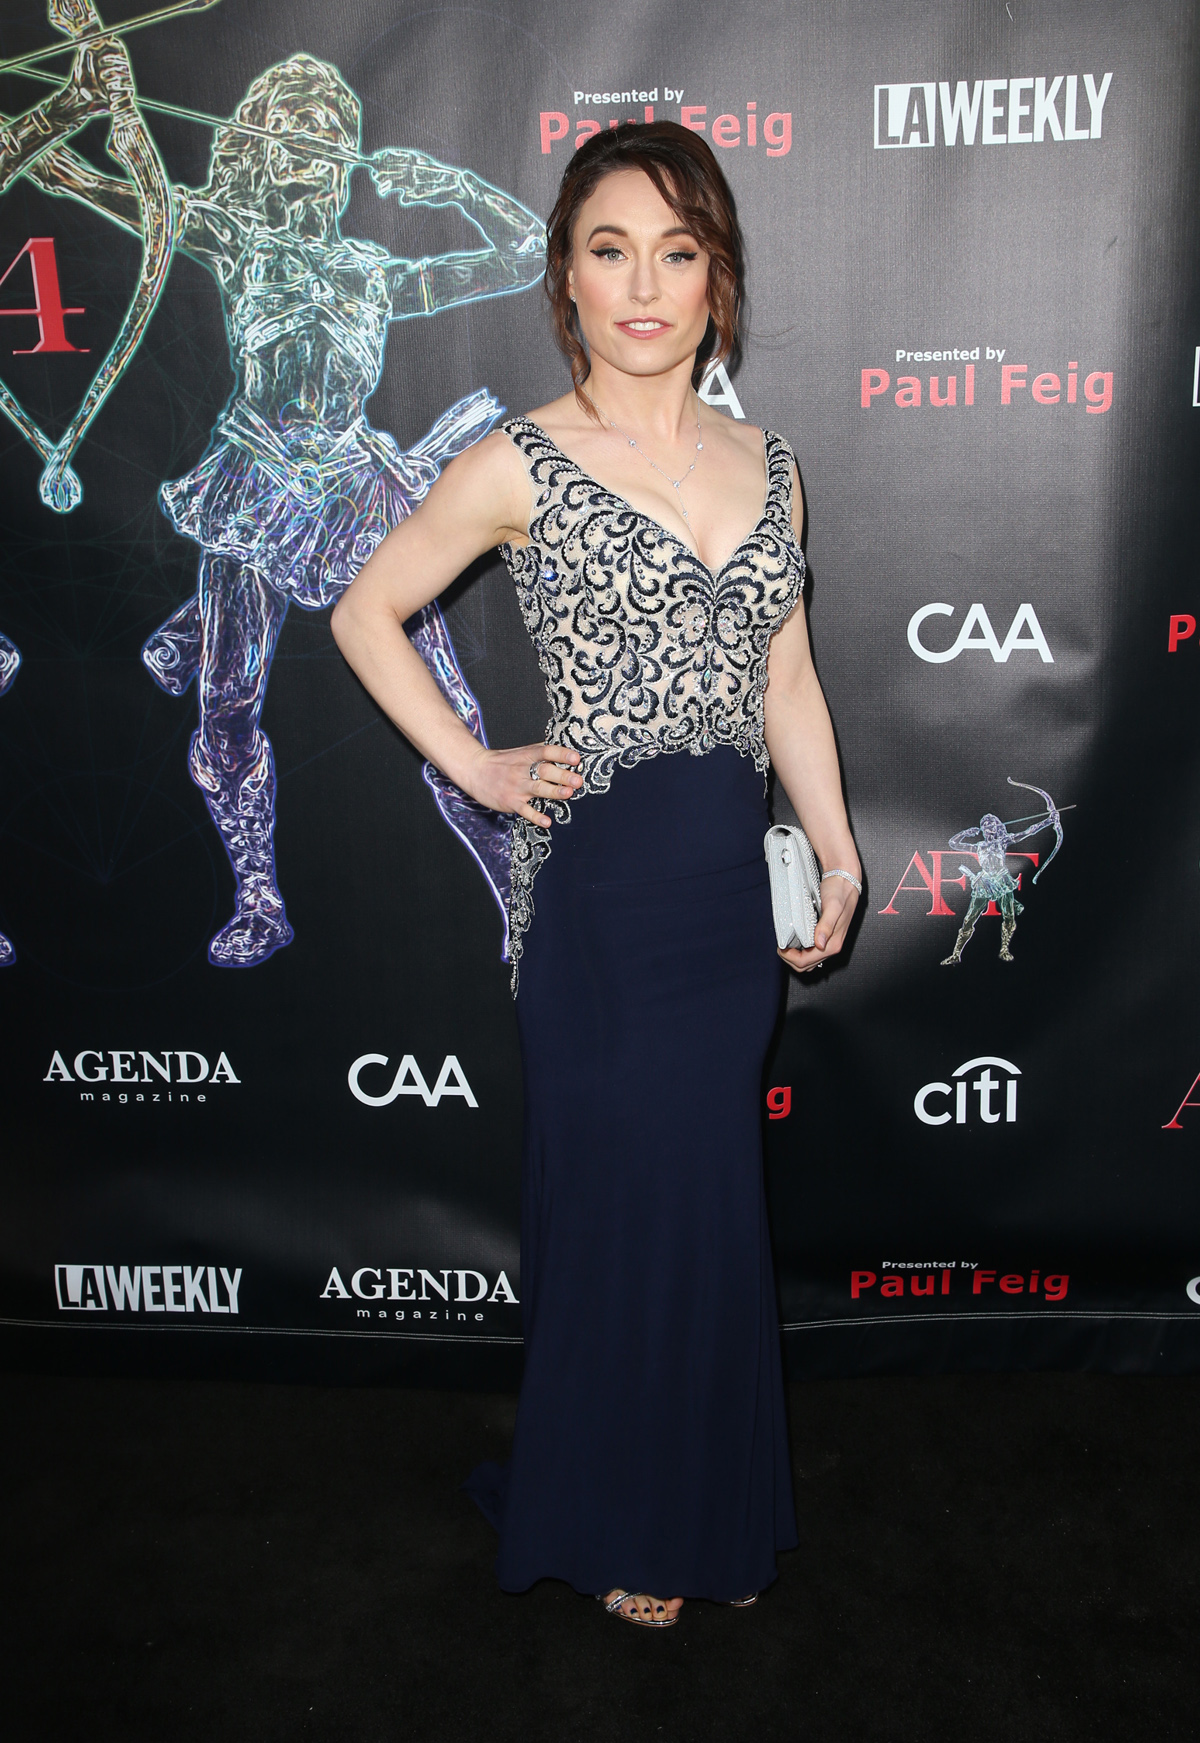 BEVERLY HILLS, CA - APRIL 26: Cassandra Ebner, at the 2018 Artemis Awards Gala at the Ahrya Fine Arts Theater in Beverly Hills, California on April 26, 2018. Credit: Faye Sadou/MediaPunch